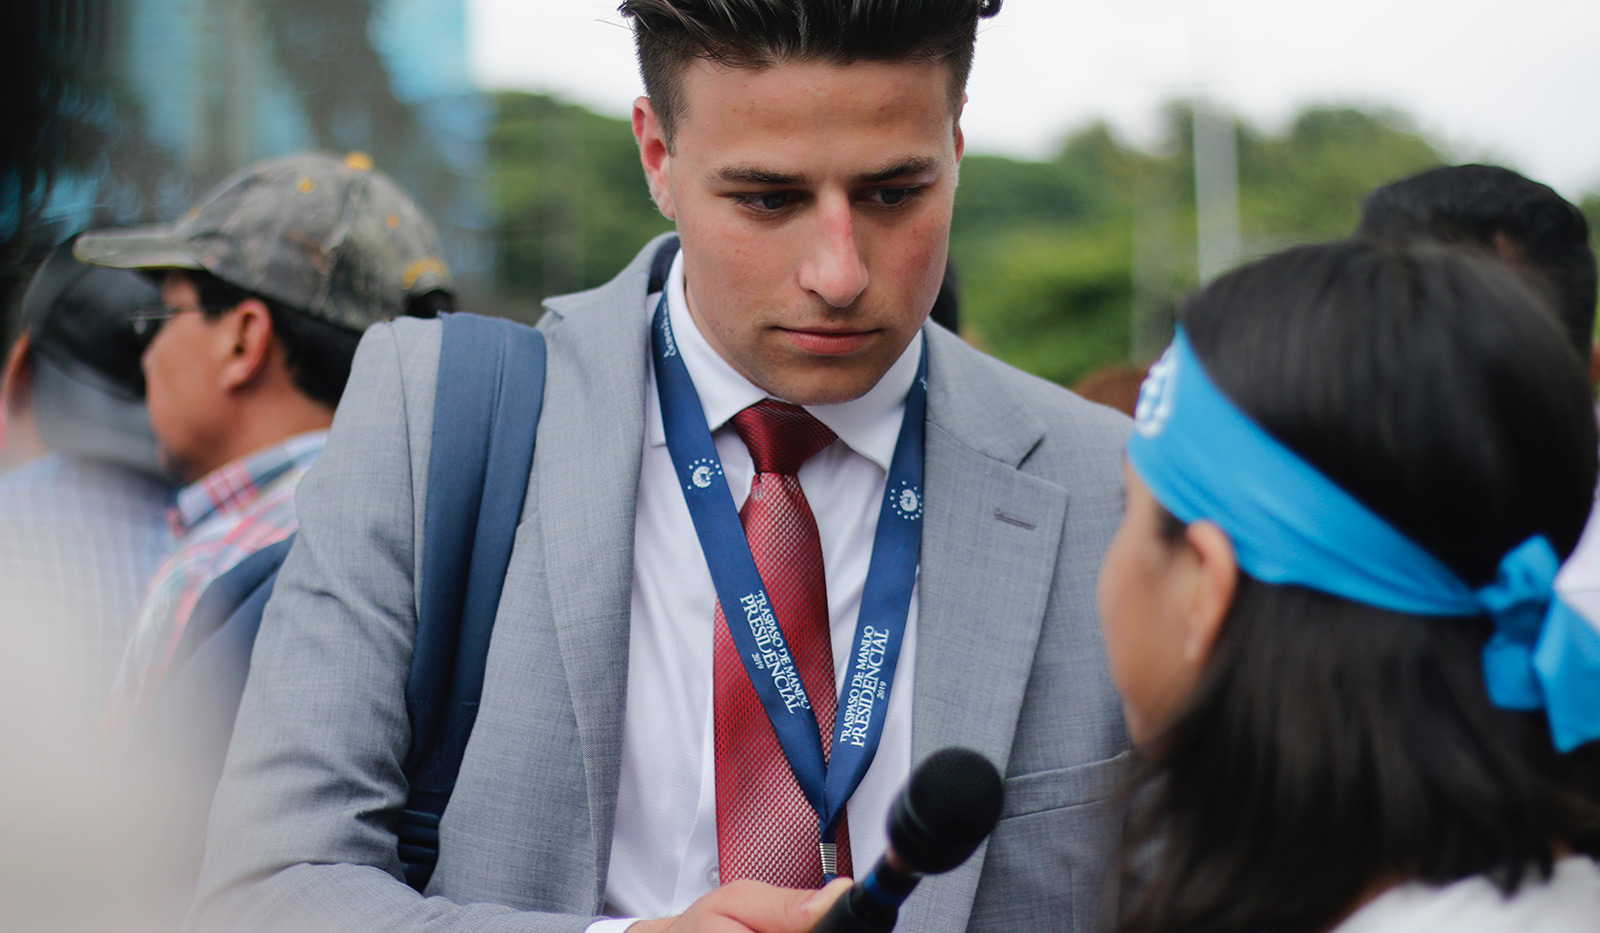 Male student journalism holding a microphone up to someone he interviewed